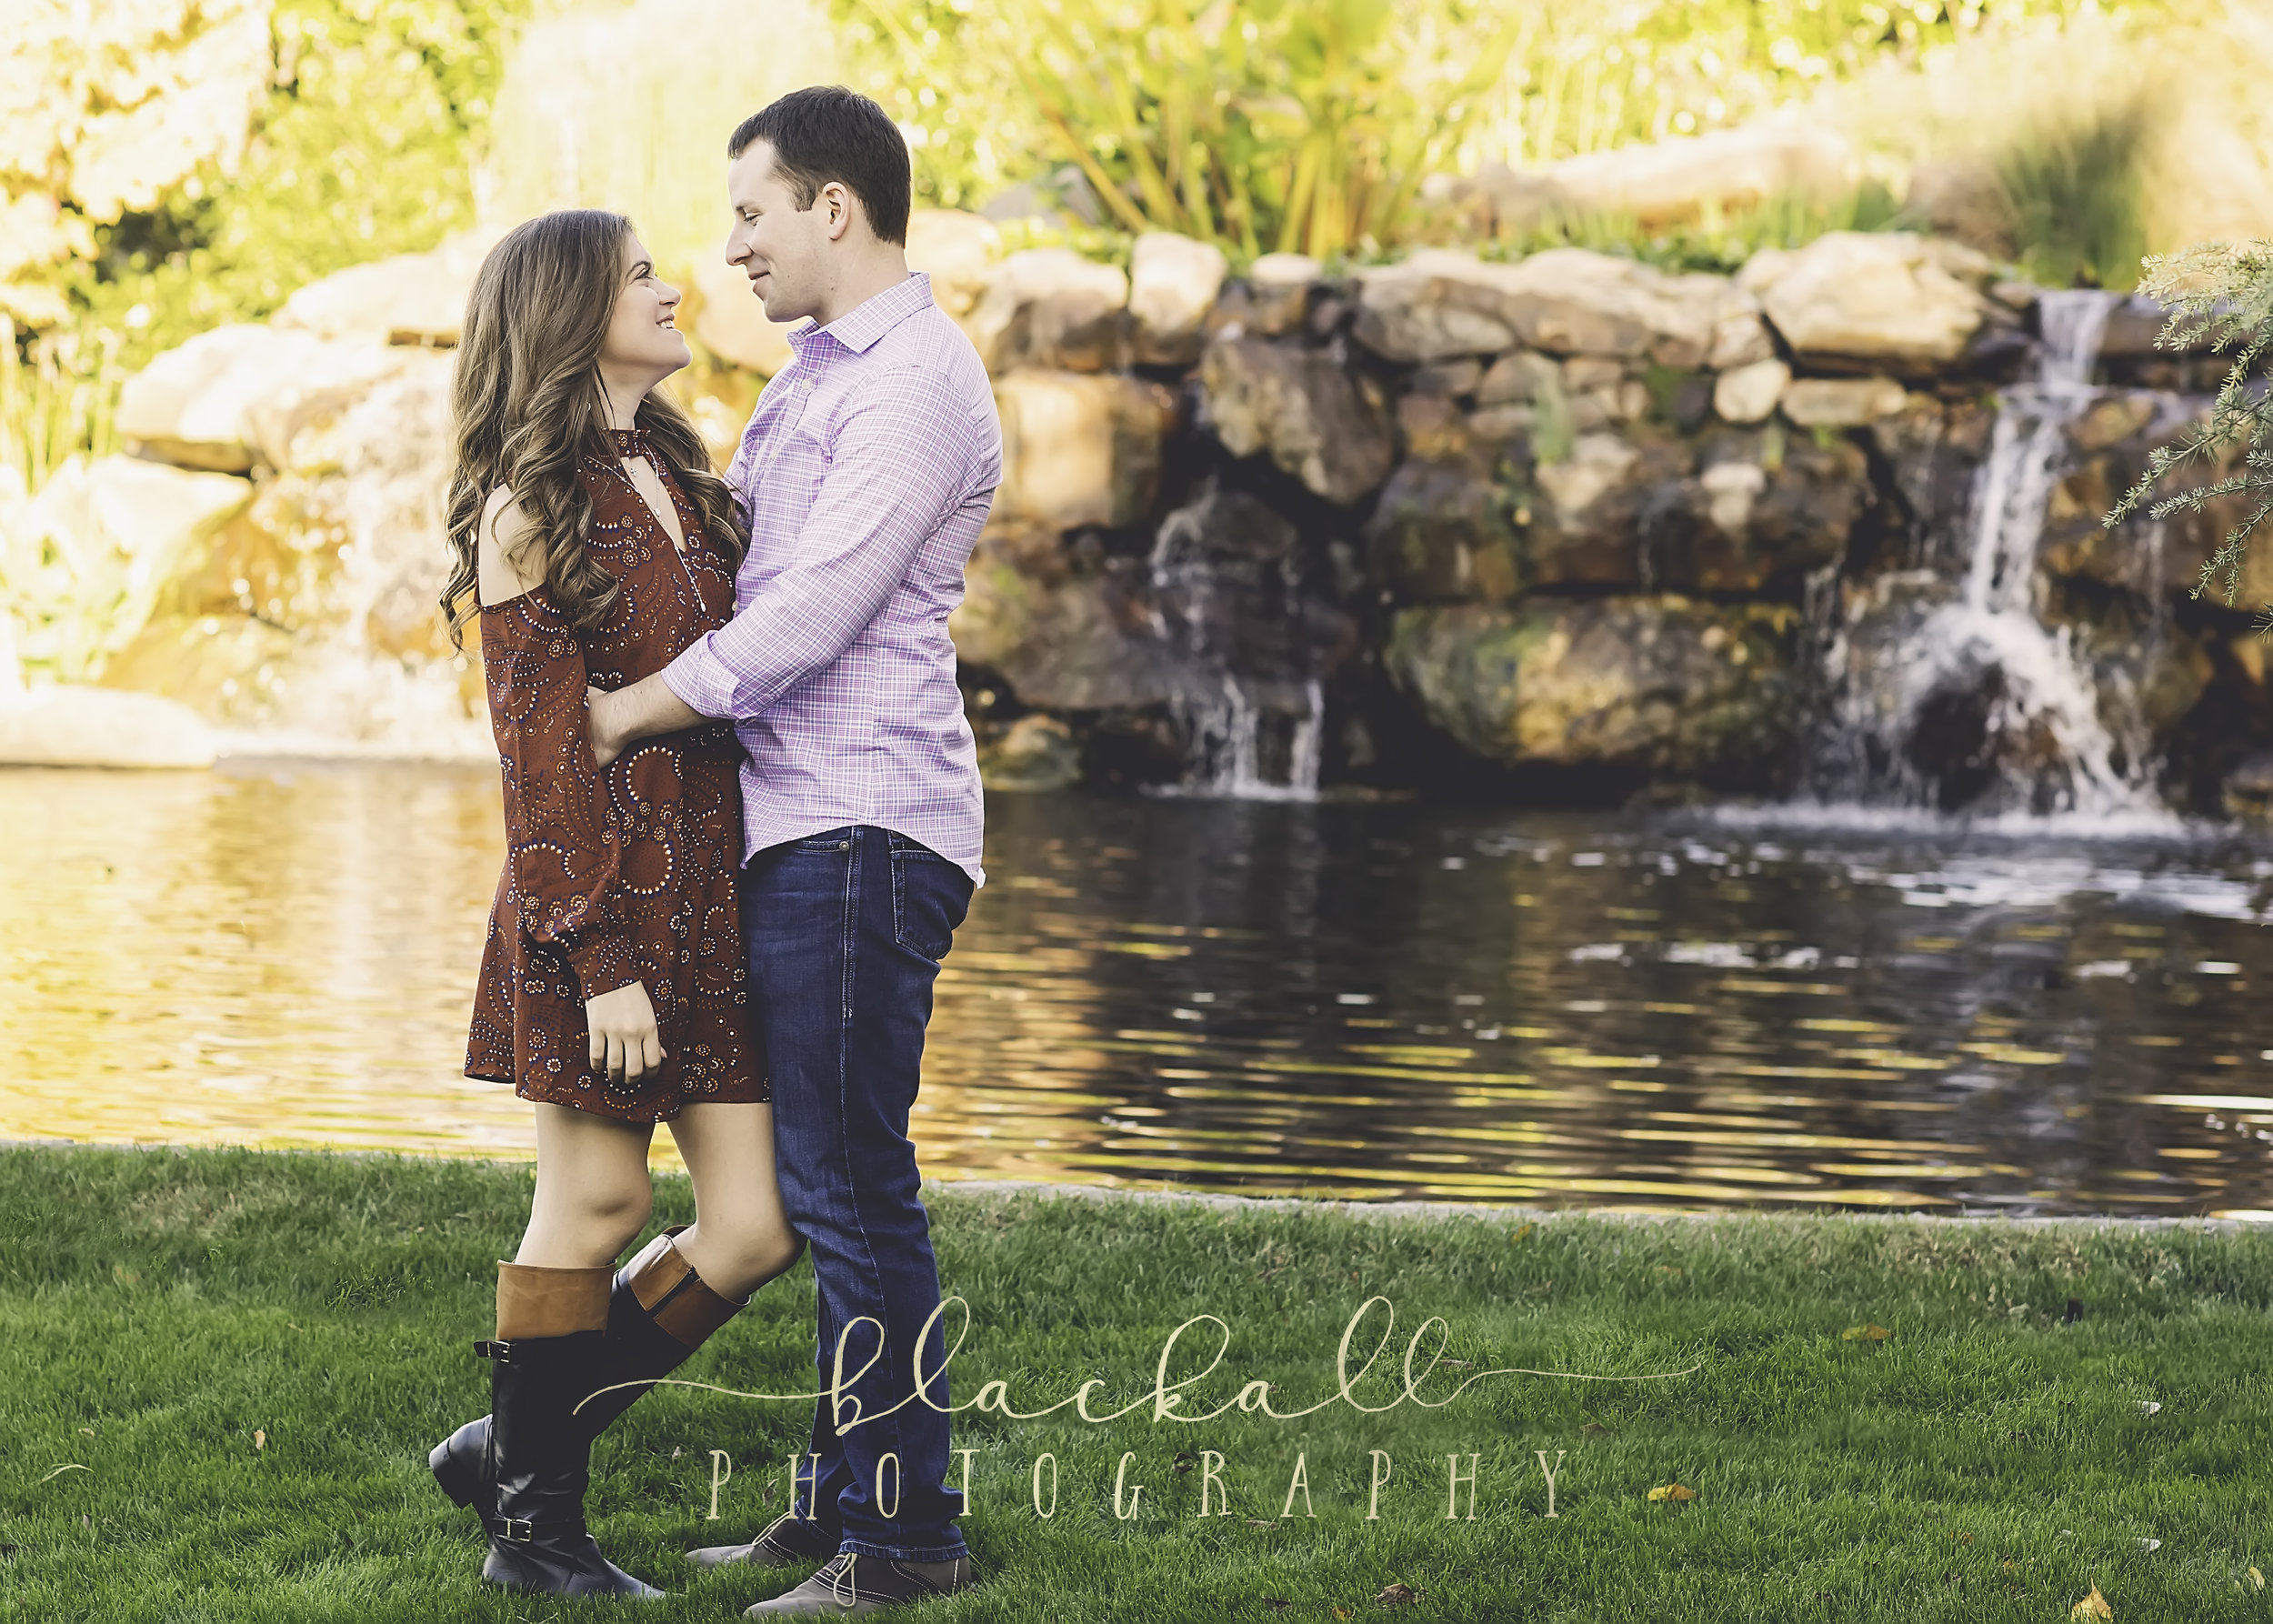 The same spot where he proposed. <3